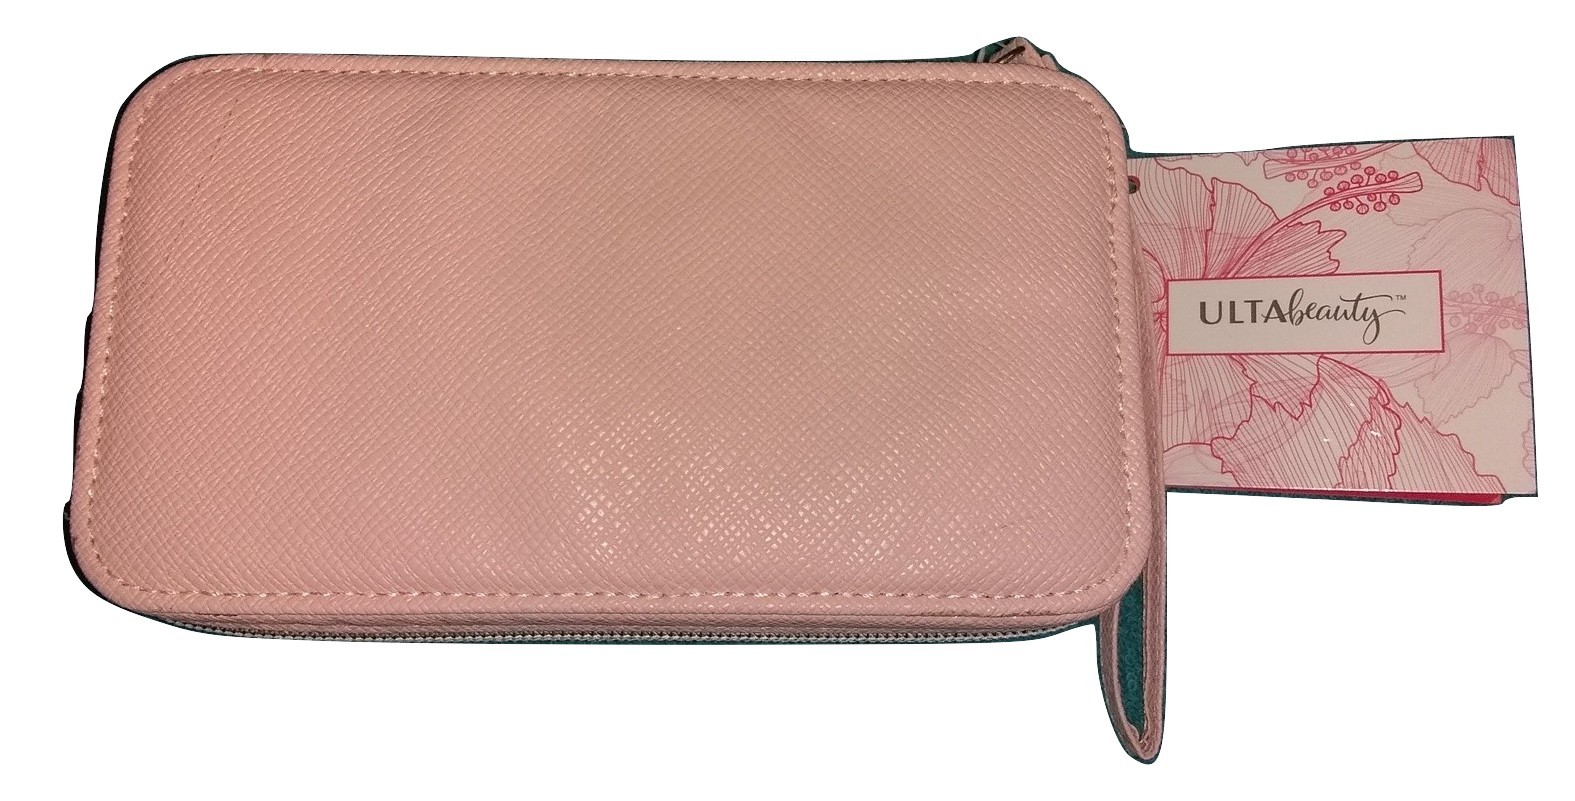 Ulta Beauty pink travel makeup cosmetic case New with tags - $14.00